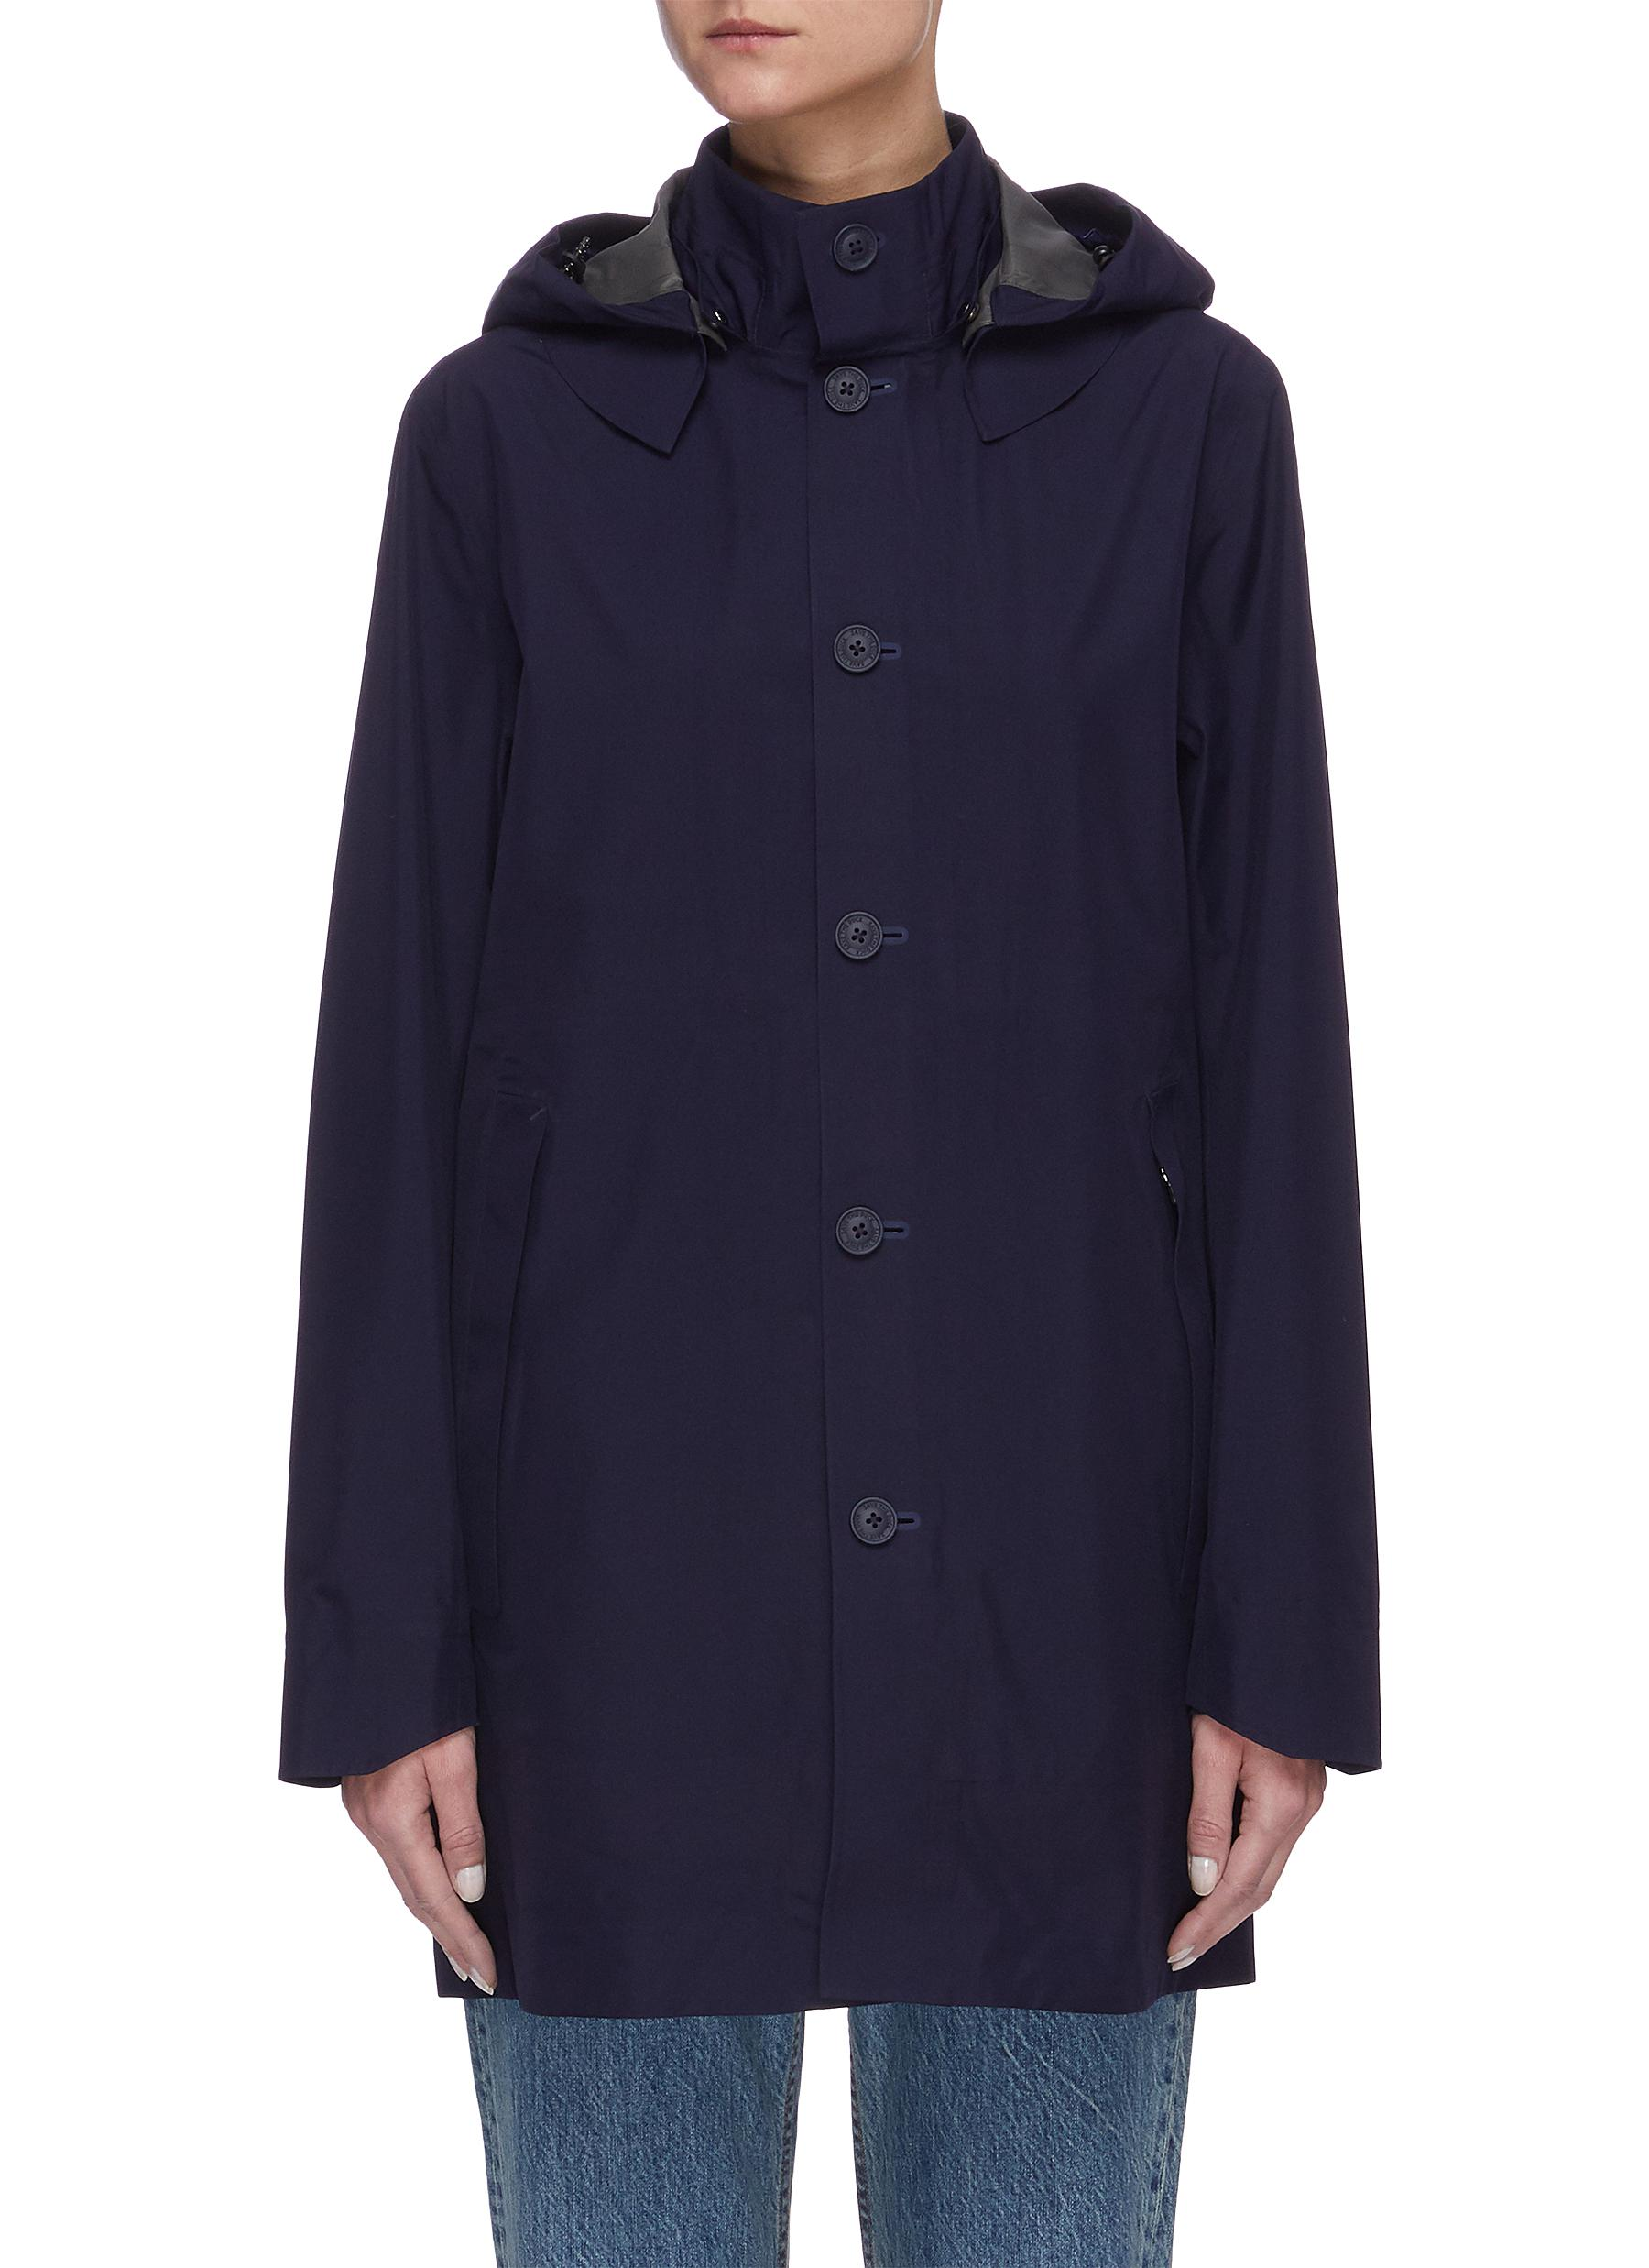 Buy Save The Duck Jackets 'Iconx' Hooded long shell jacket